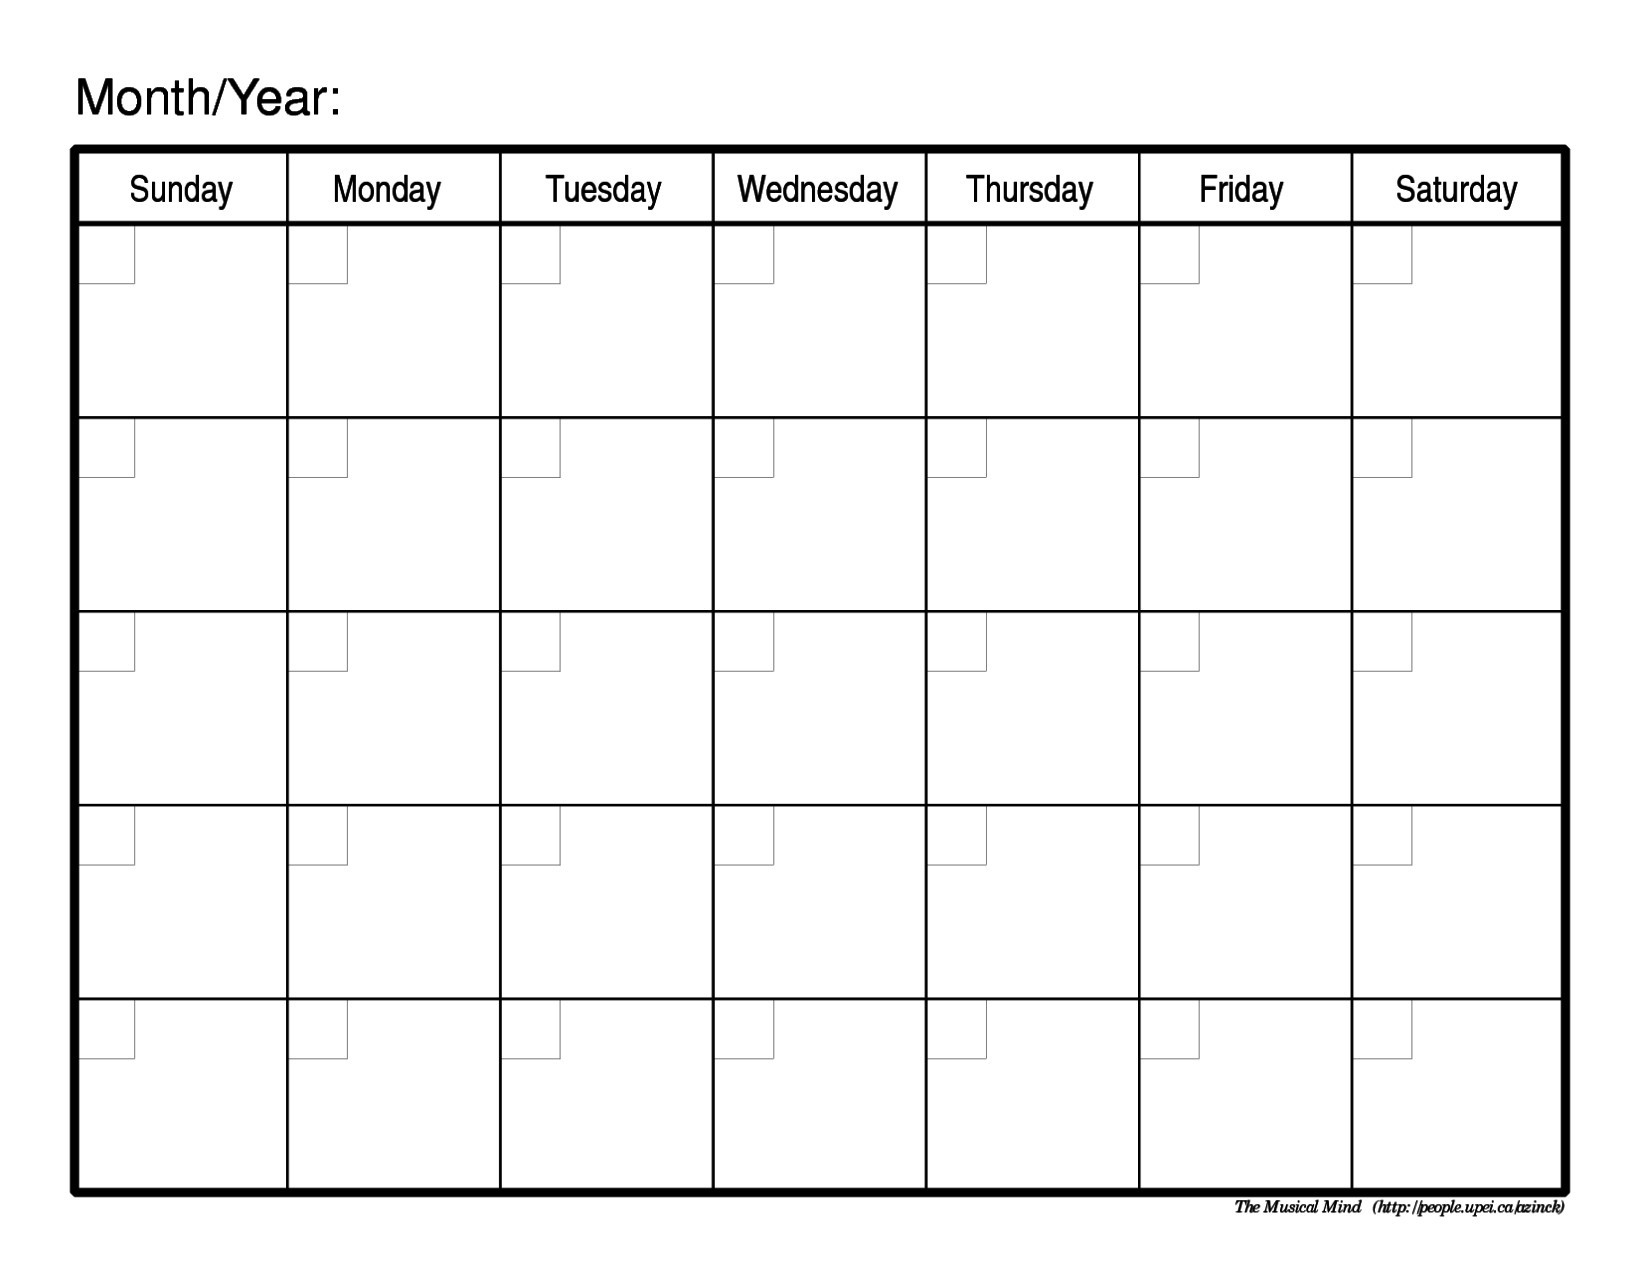 Schedule Template Free Blank Printable R Aaron The Artist Weekly  Free Blank Printable Monthly Calendar